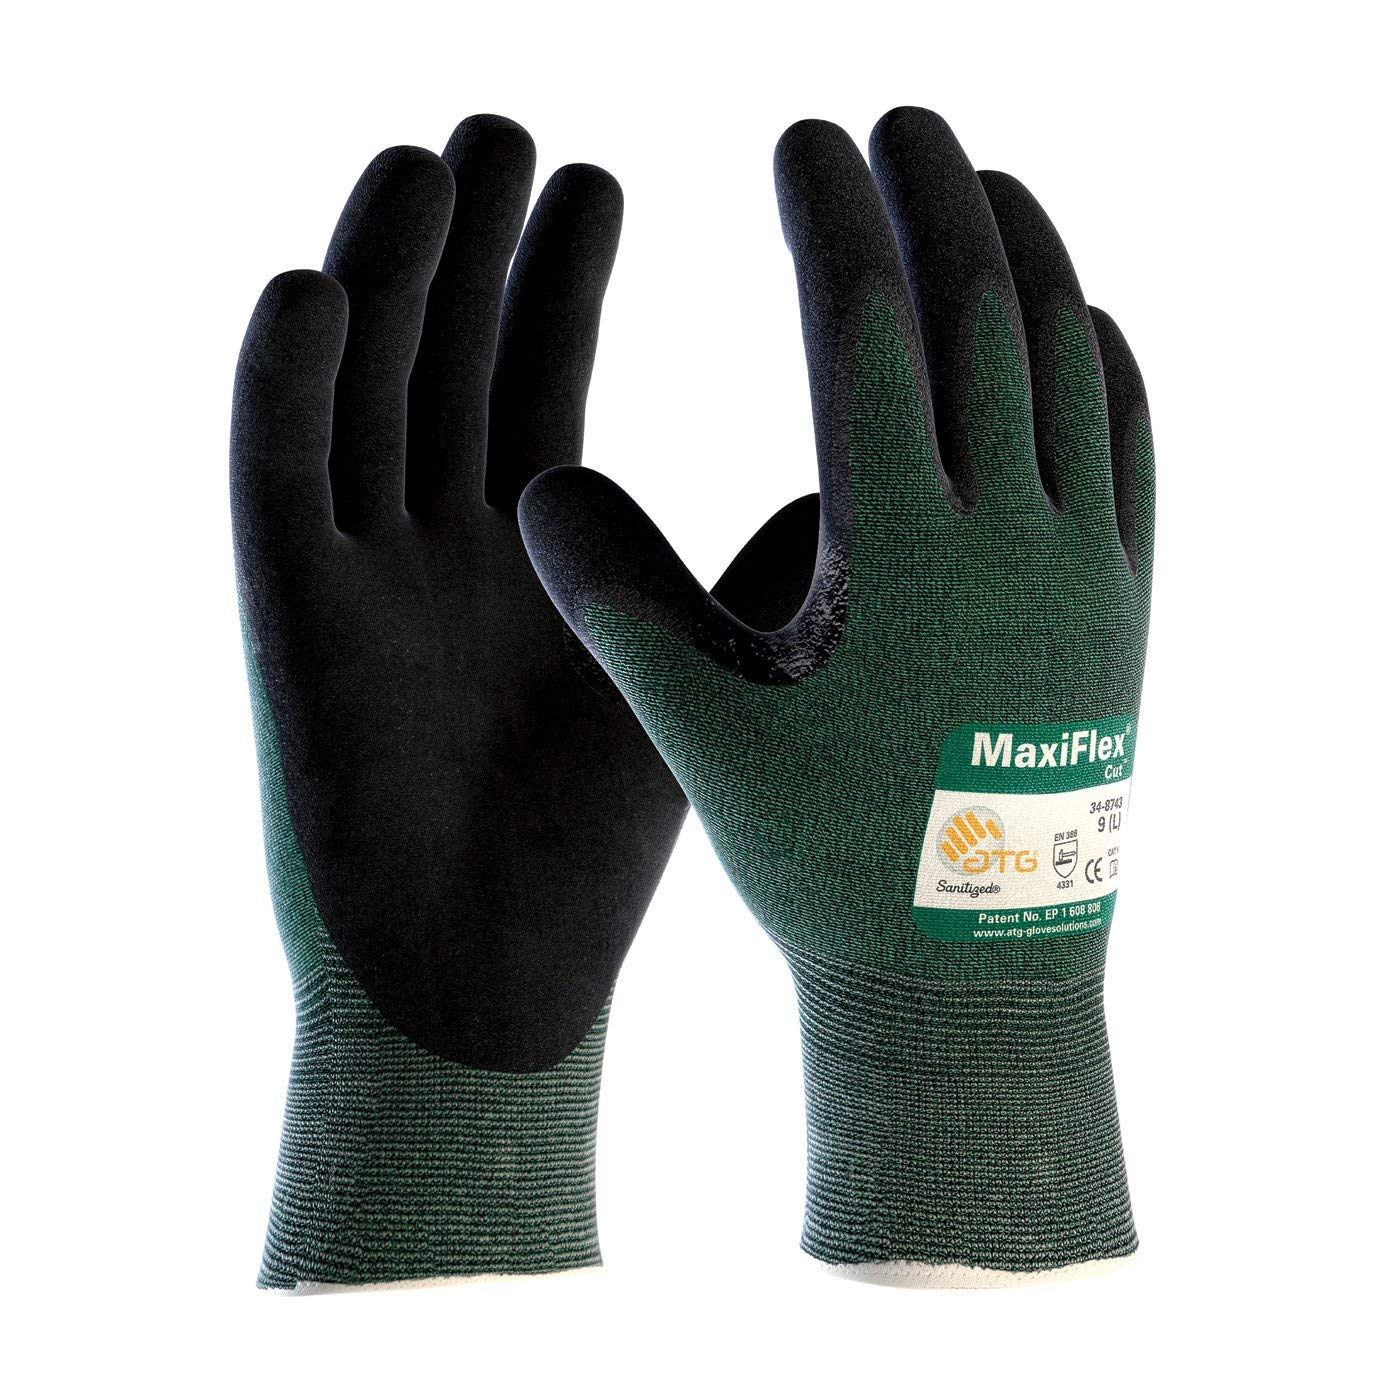 PIP ATG 34-8743/S Small MaxiFlex Cut, Green Engineered Yarn, Black Gloves, 12-Pack